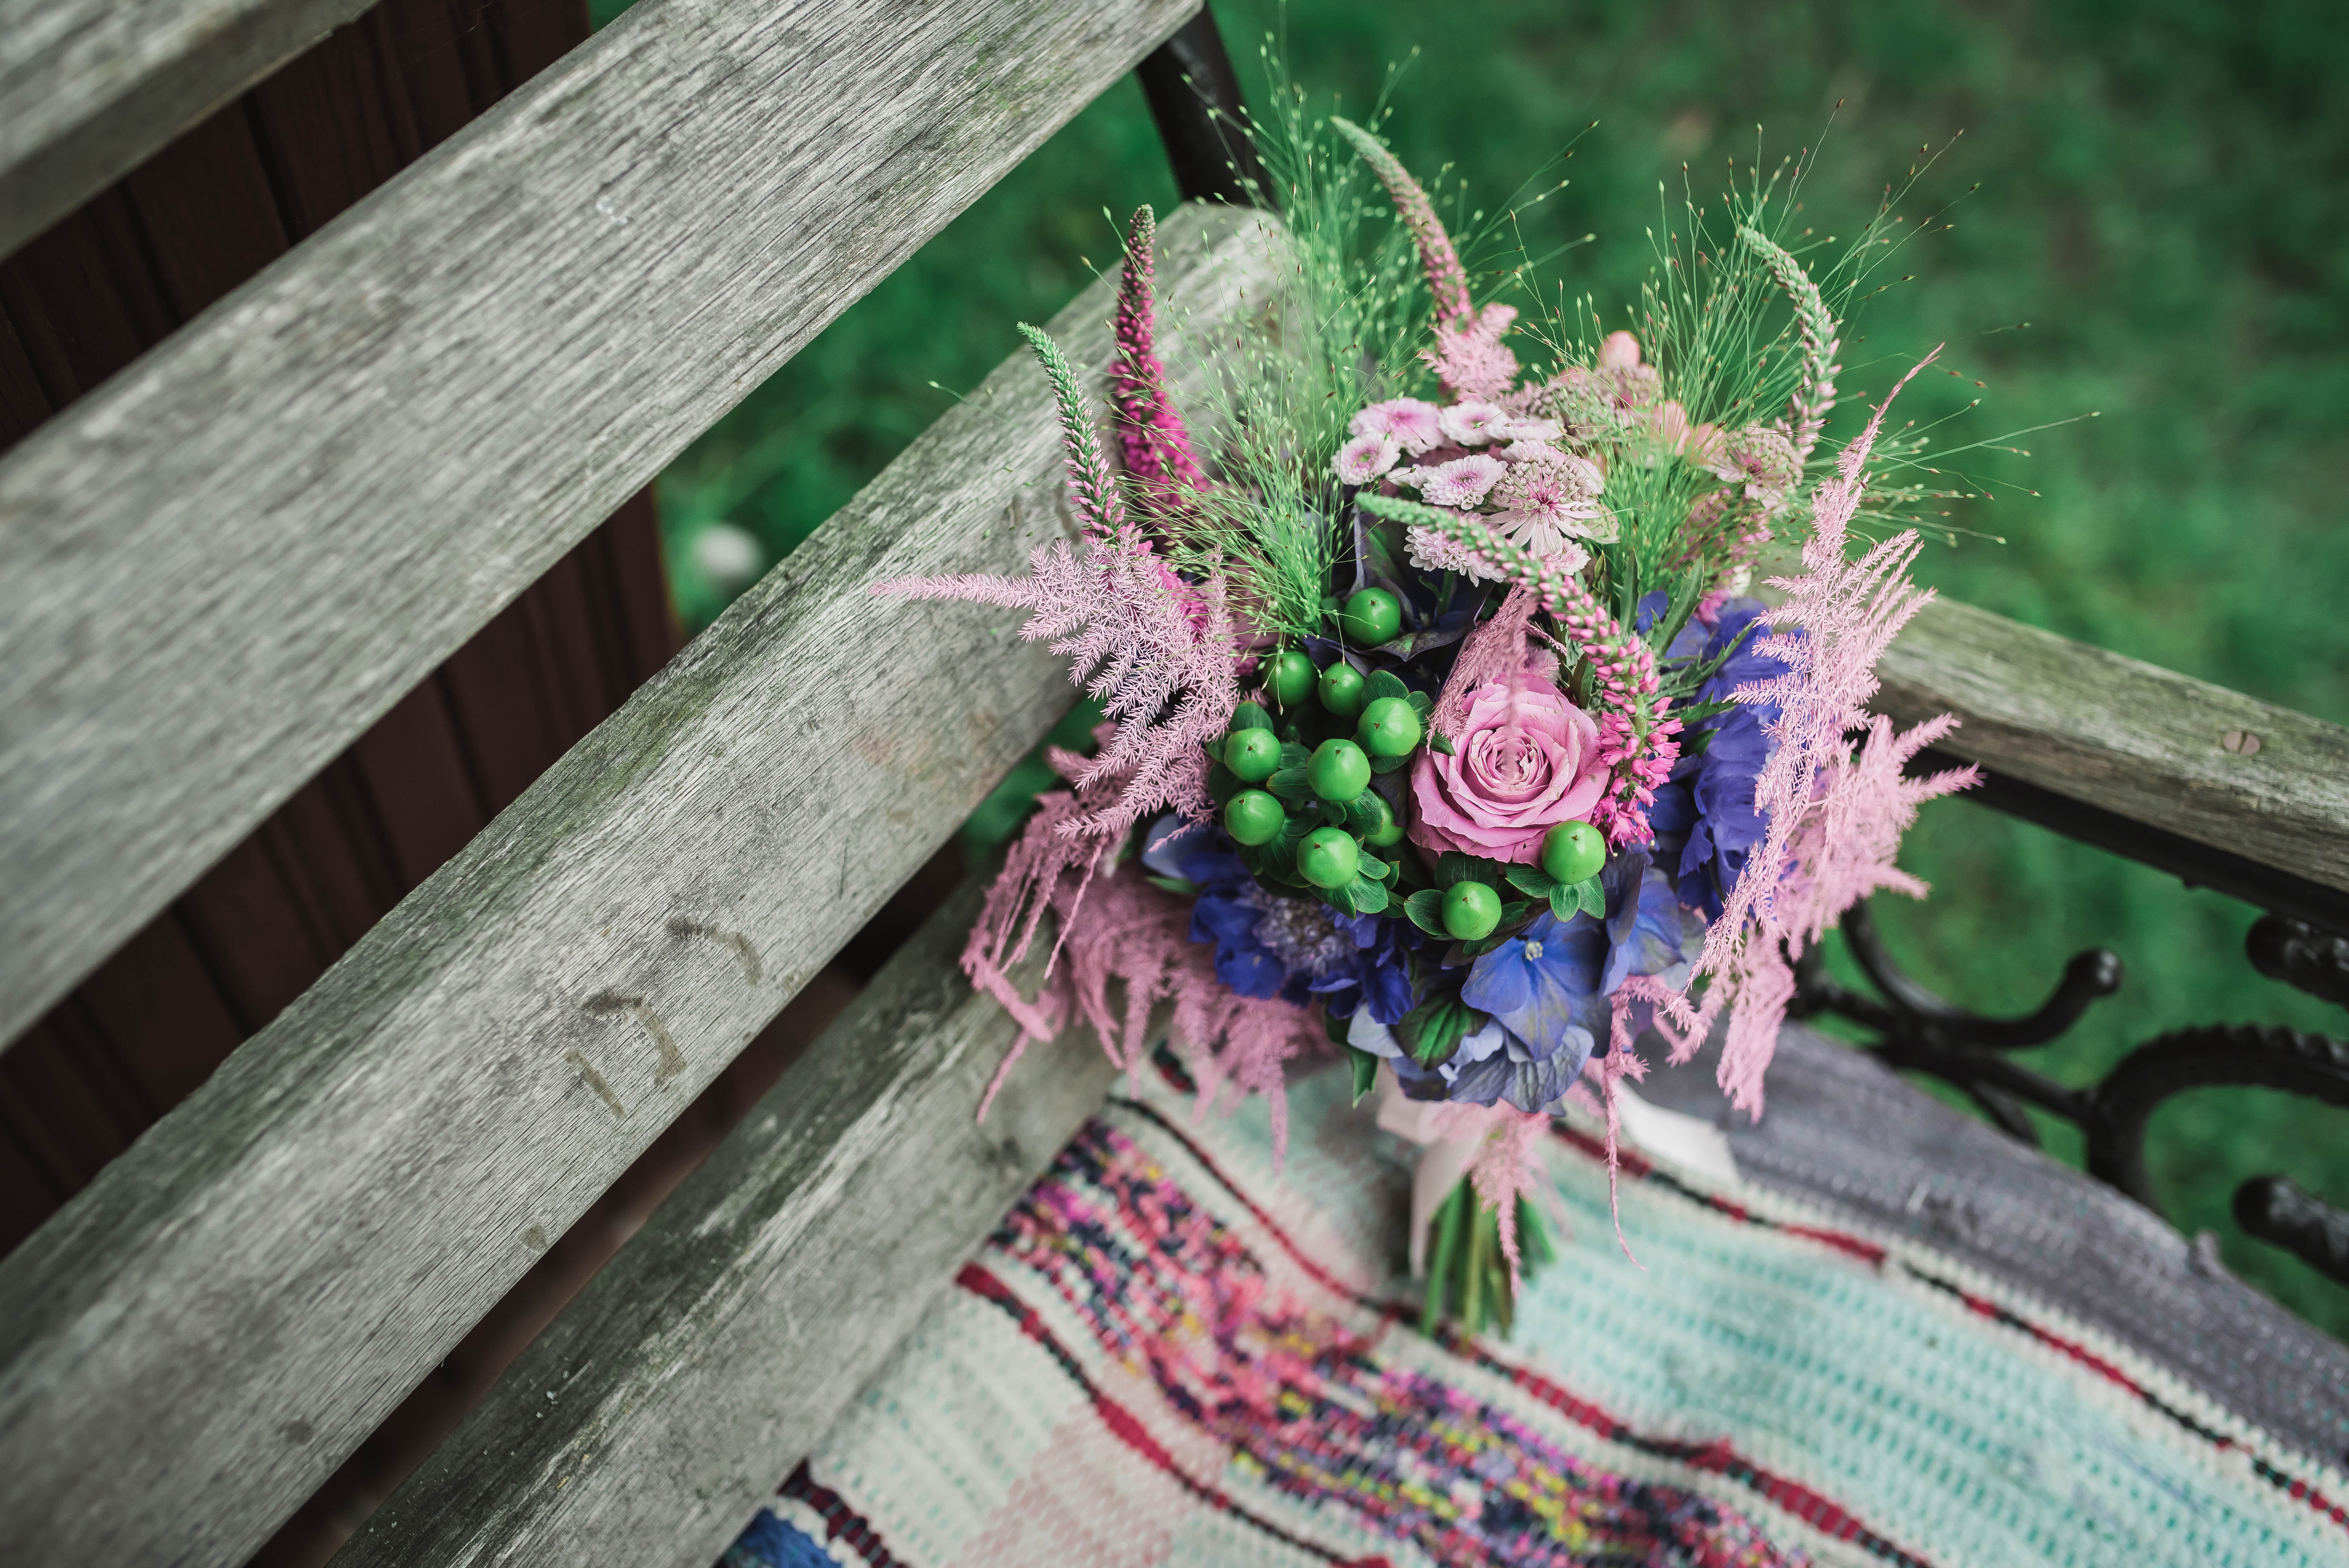 A bouquet of various flowers, berries and grasses on an old wooden bench